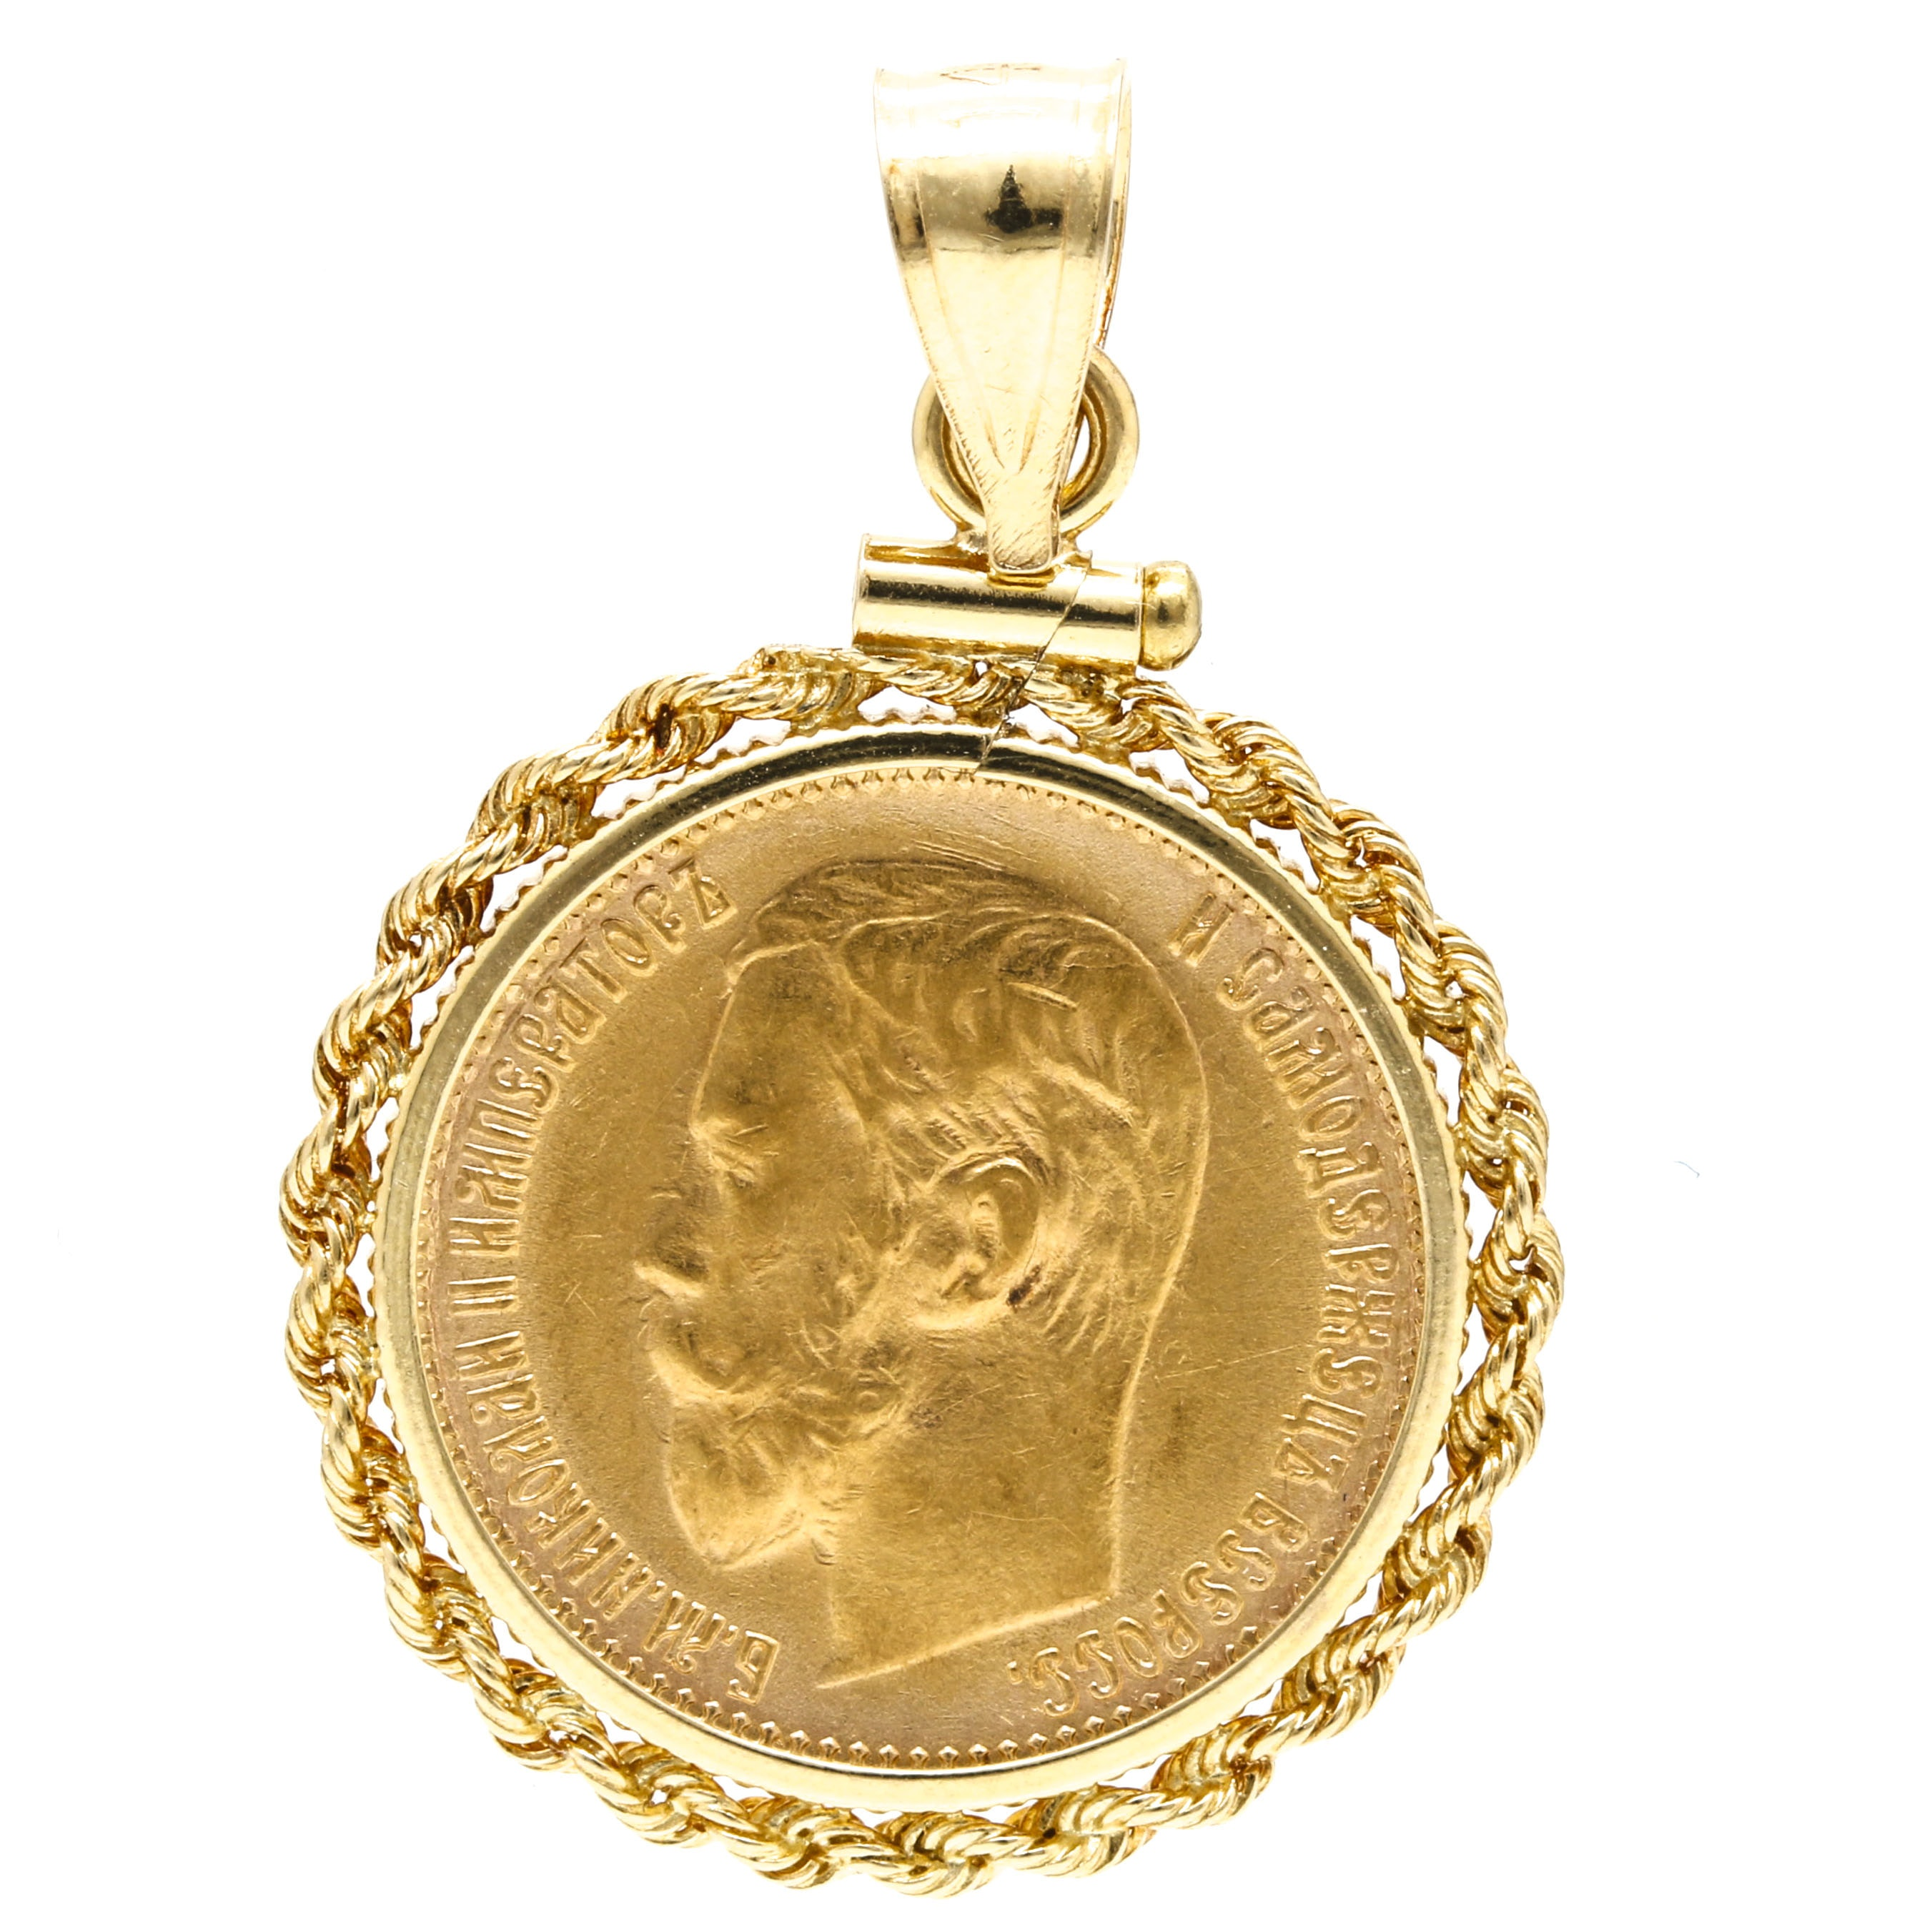 22K Yellow Gold 1898 Russian Sovereign Coin Pendant